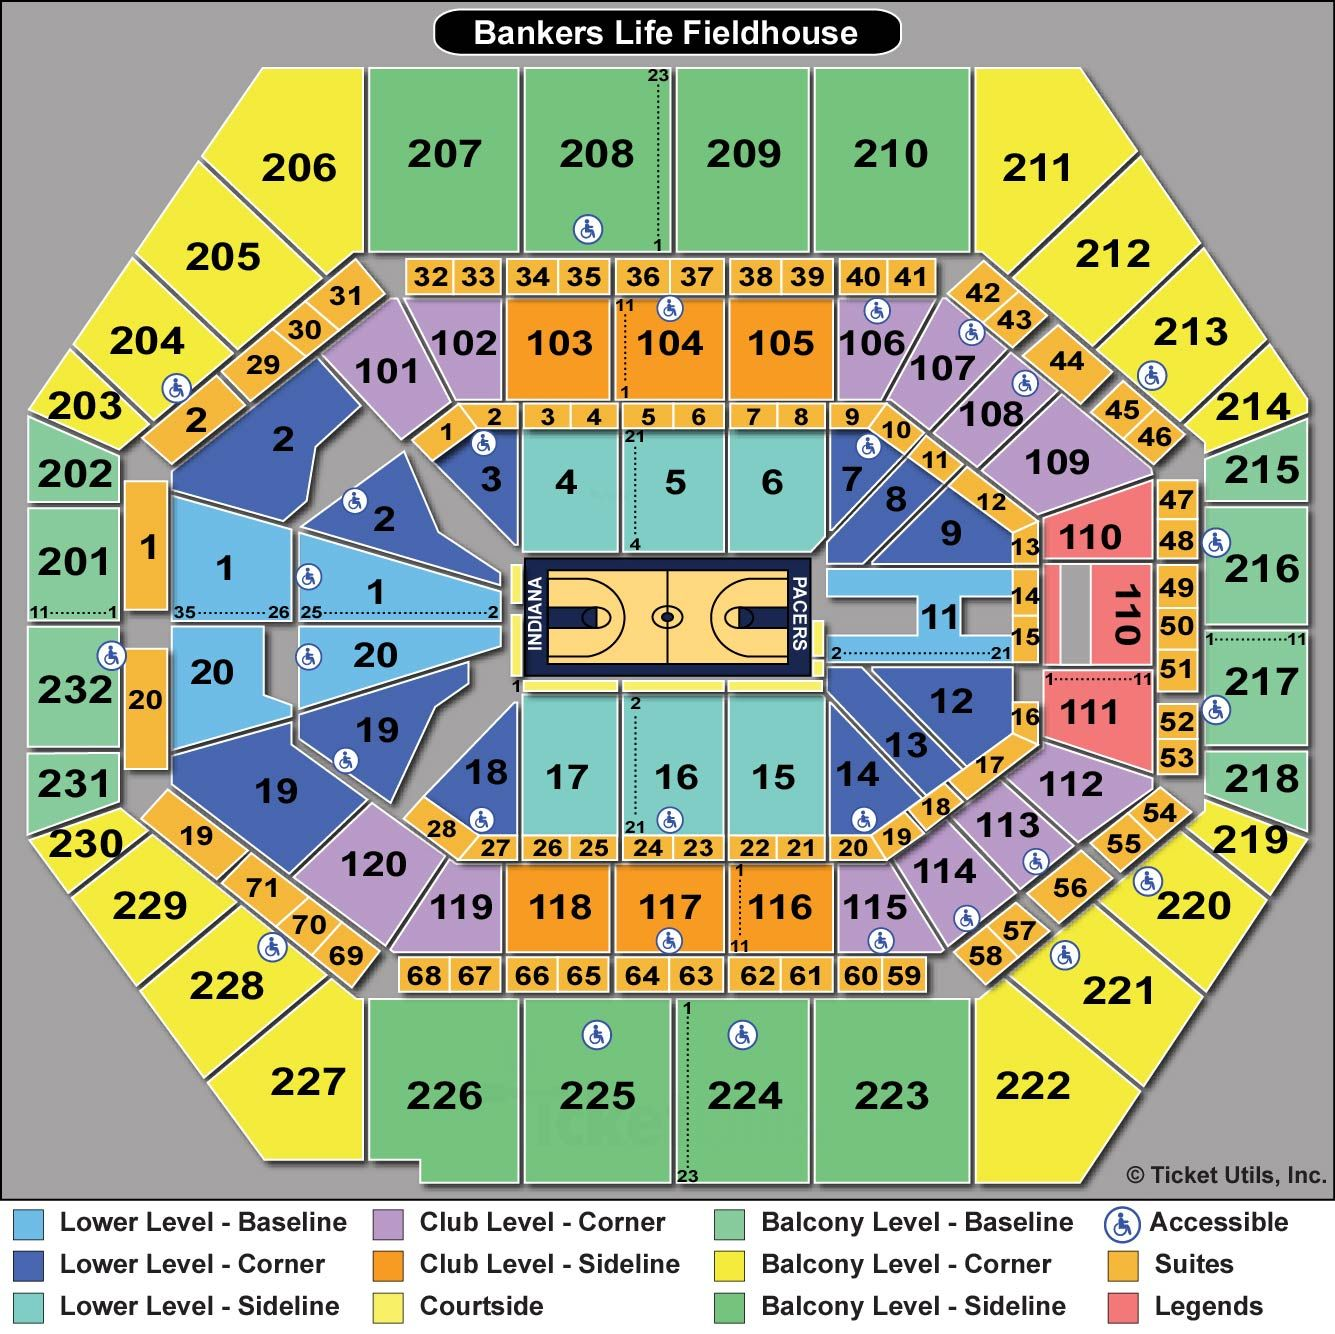 Bankers life fieldhouse suite seating chart google search